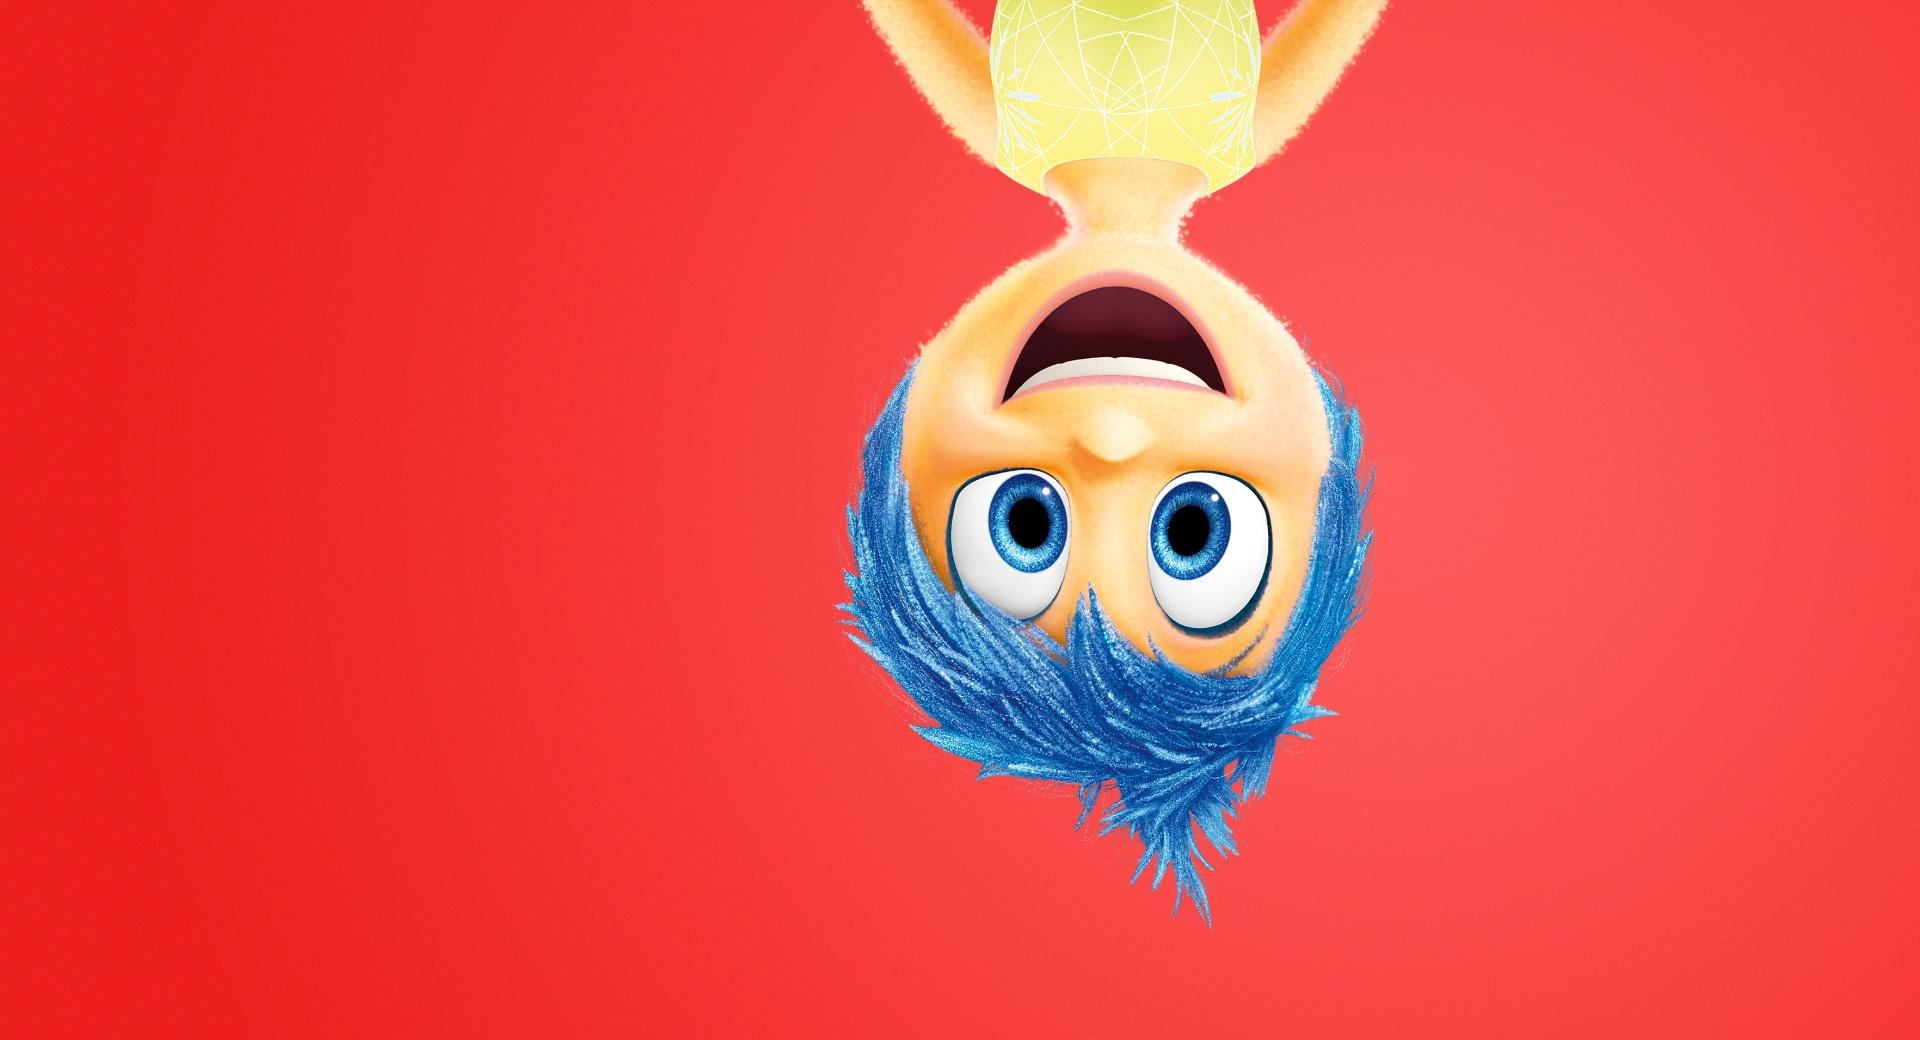 Inside Out 2015 Joy - Disney, Pixar wallpapers HD quality